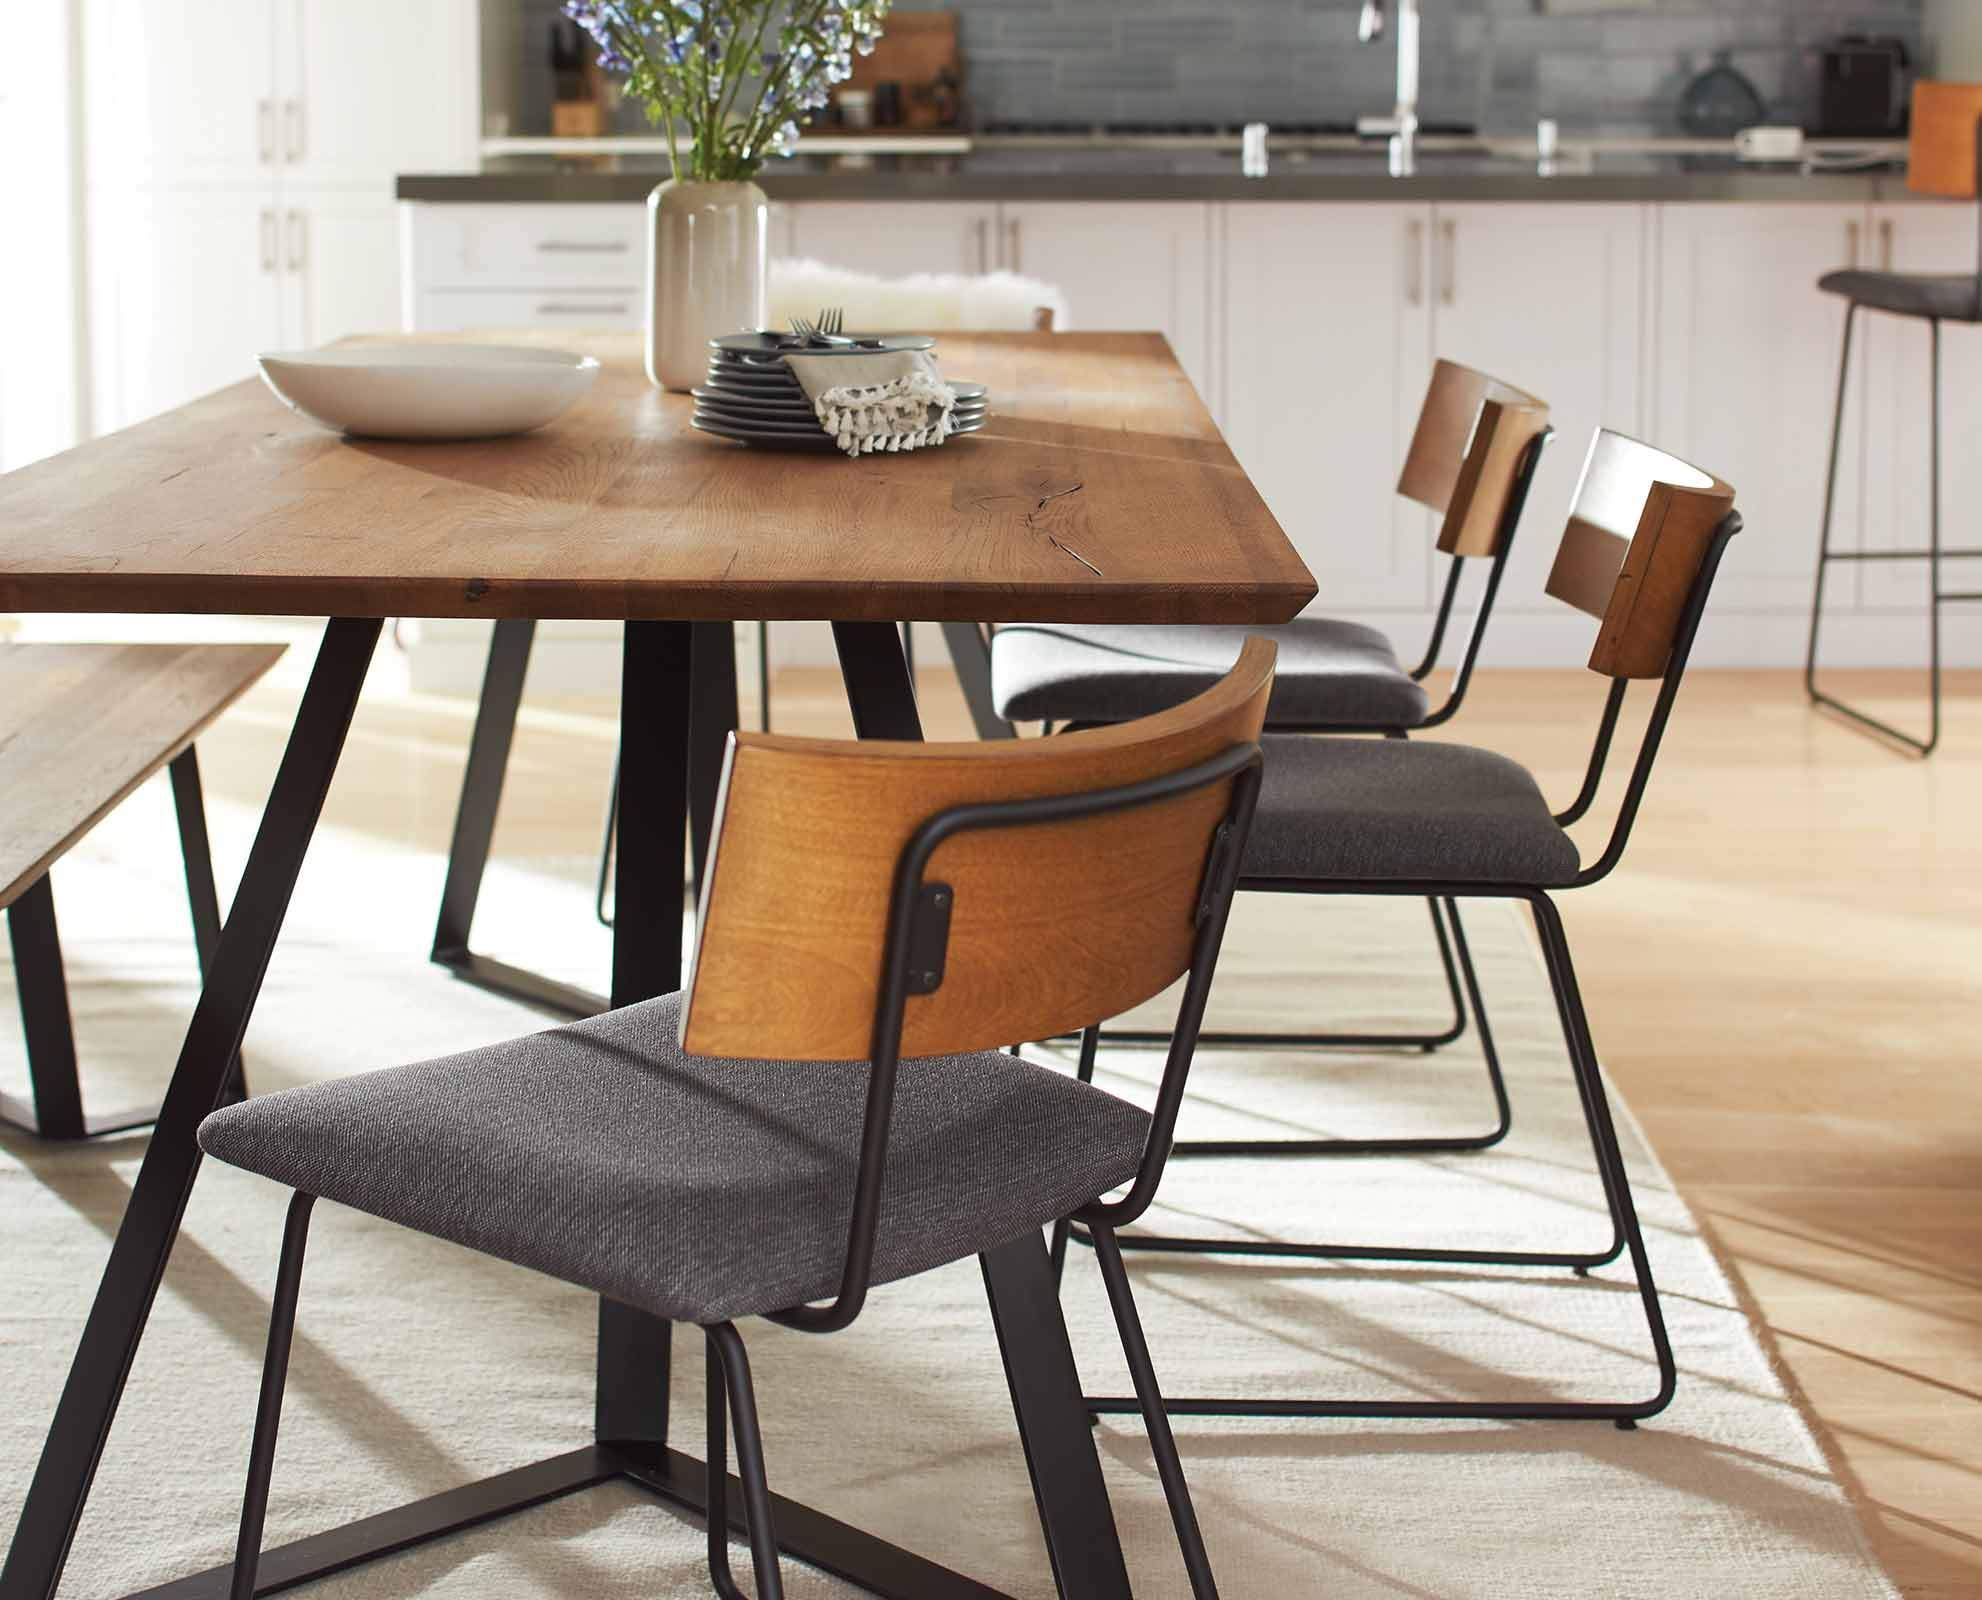 Rustic Industrial Dining Table And Chairs